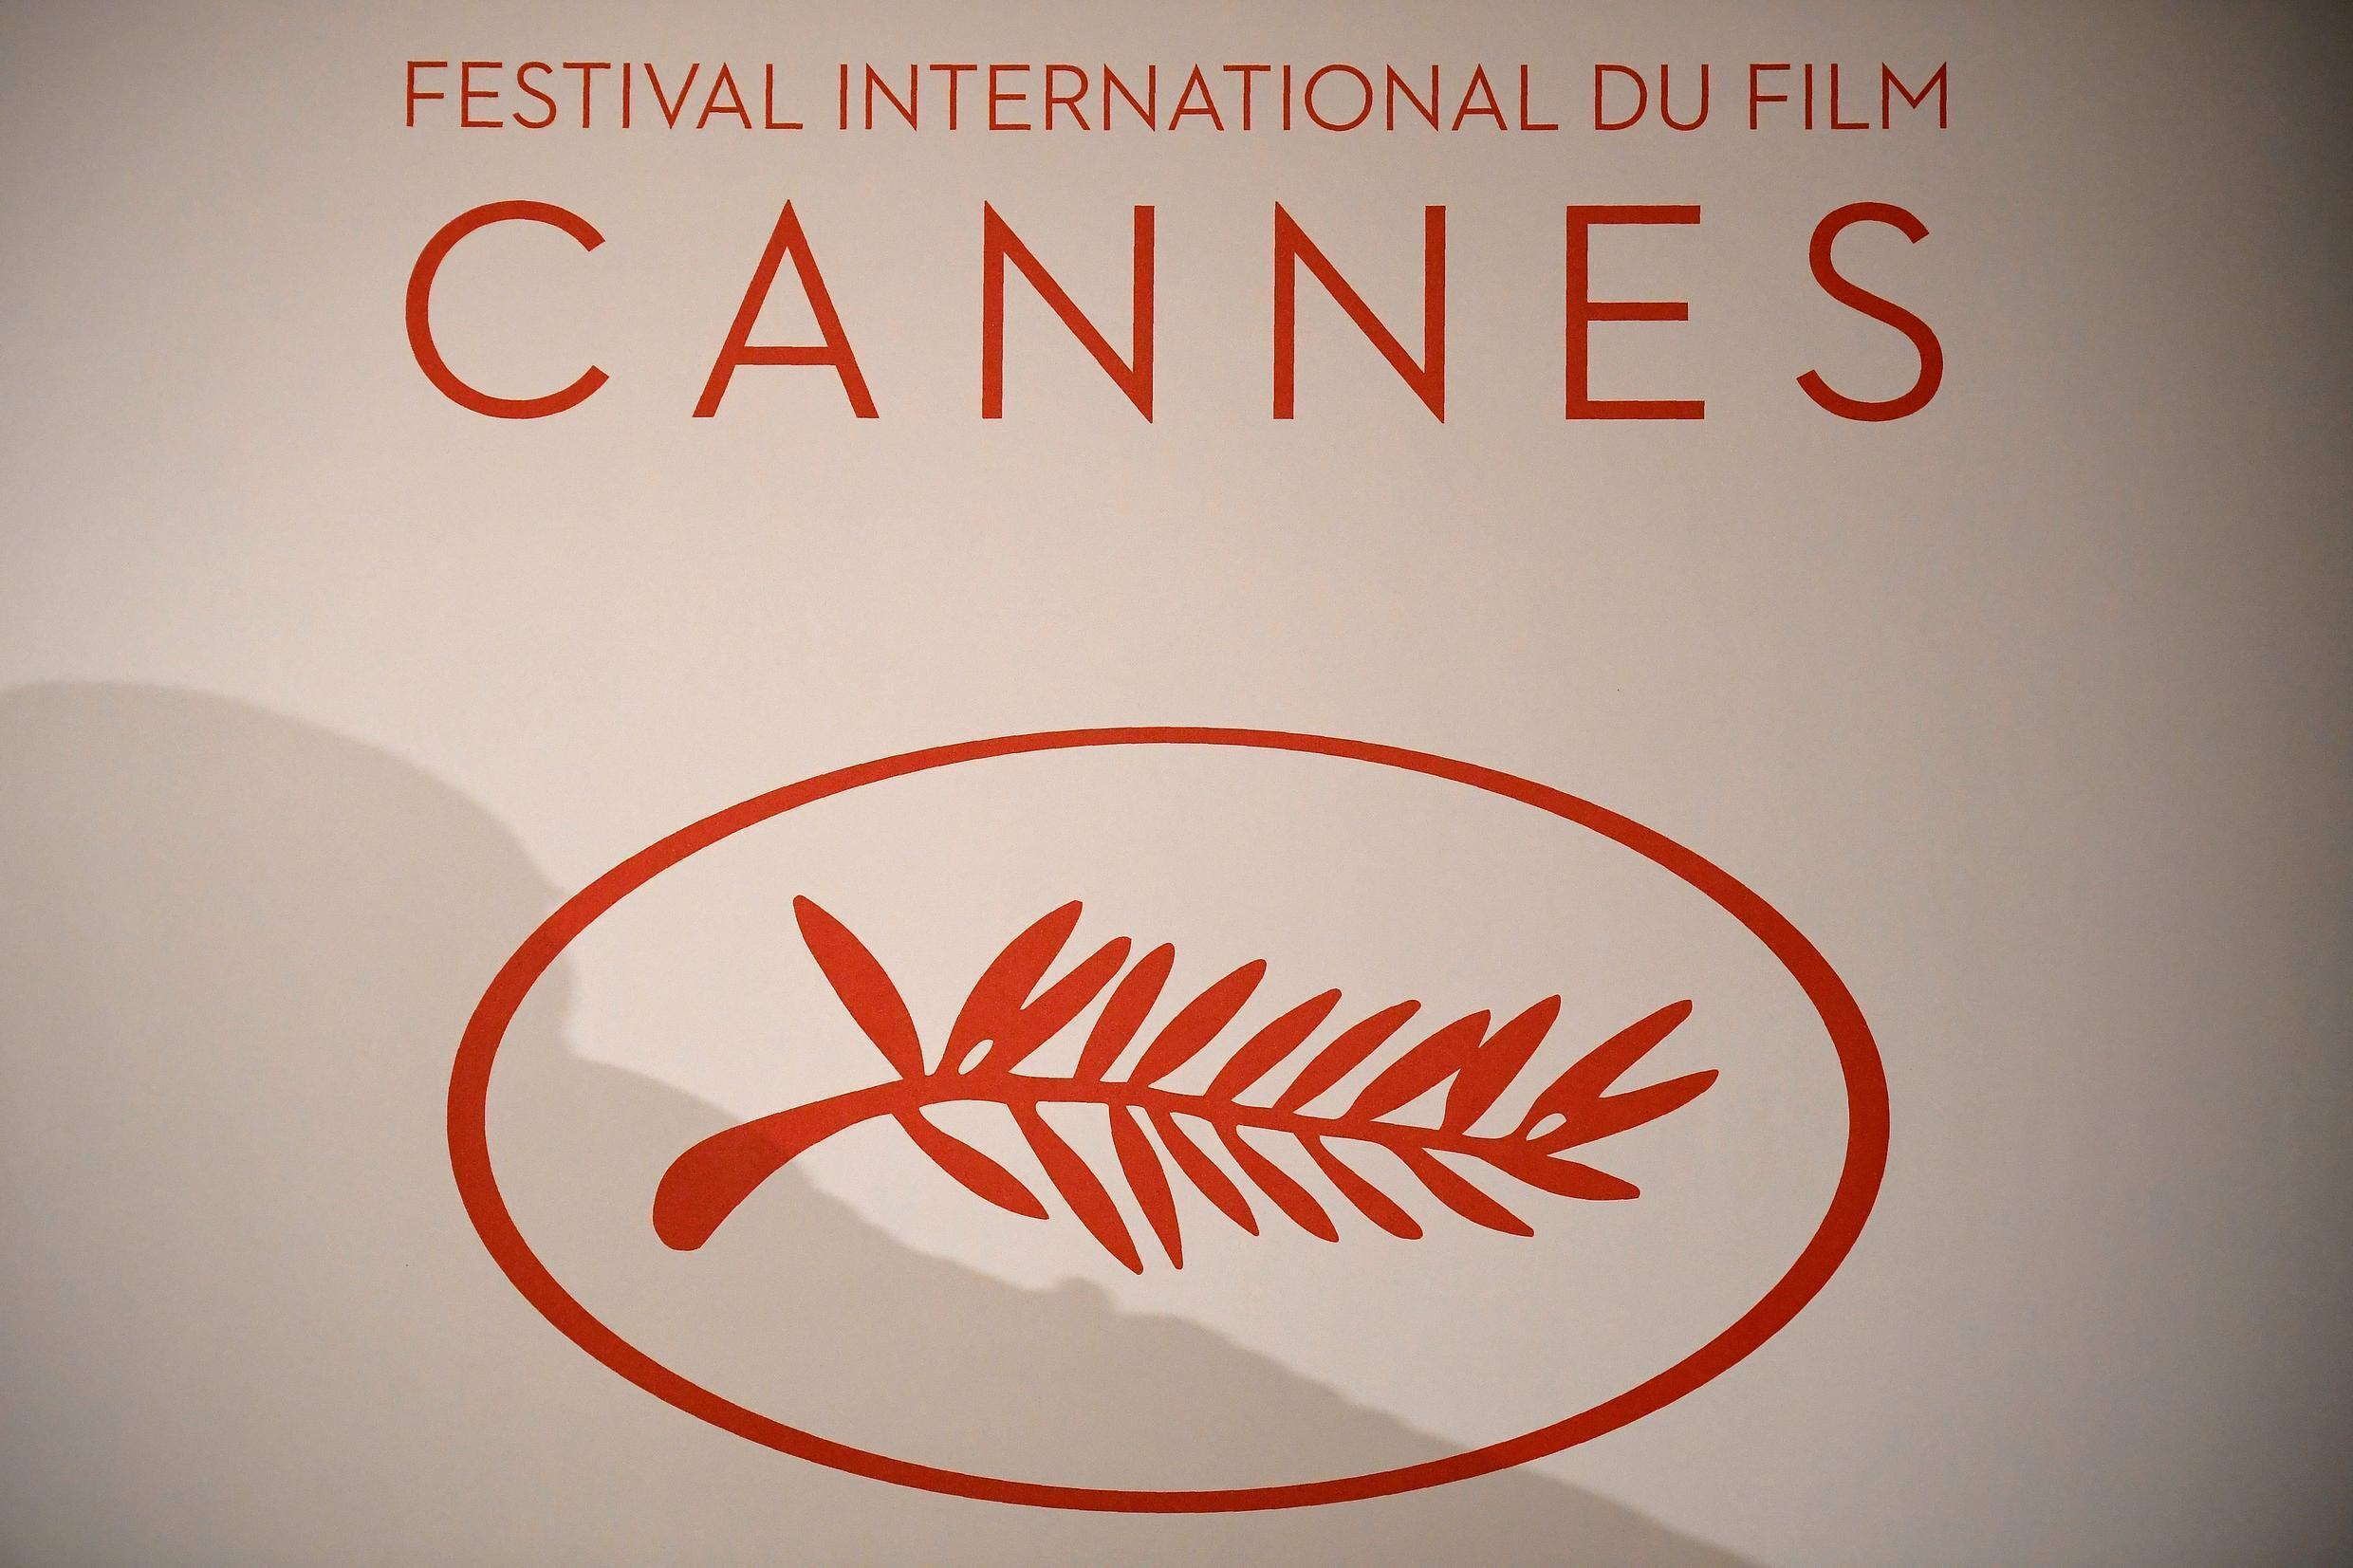 The Cannes Film Festival has been postponed, another sign of uncertainty for an industry battered by a year of shuttered cinemas, delayed openings and cancelled productions